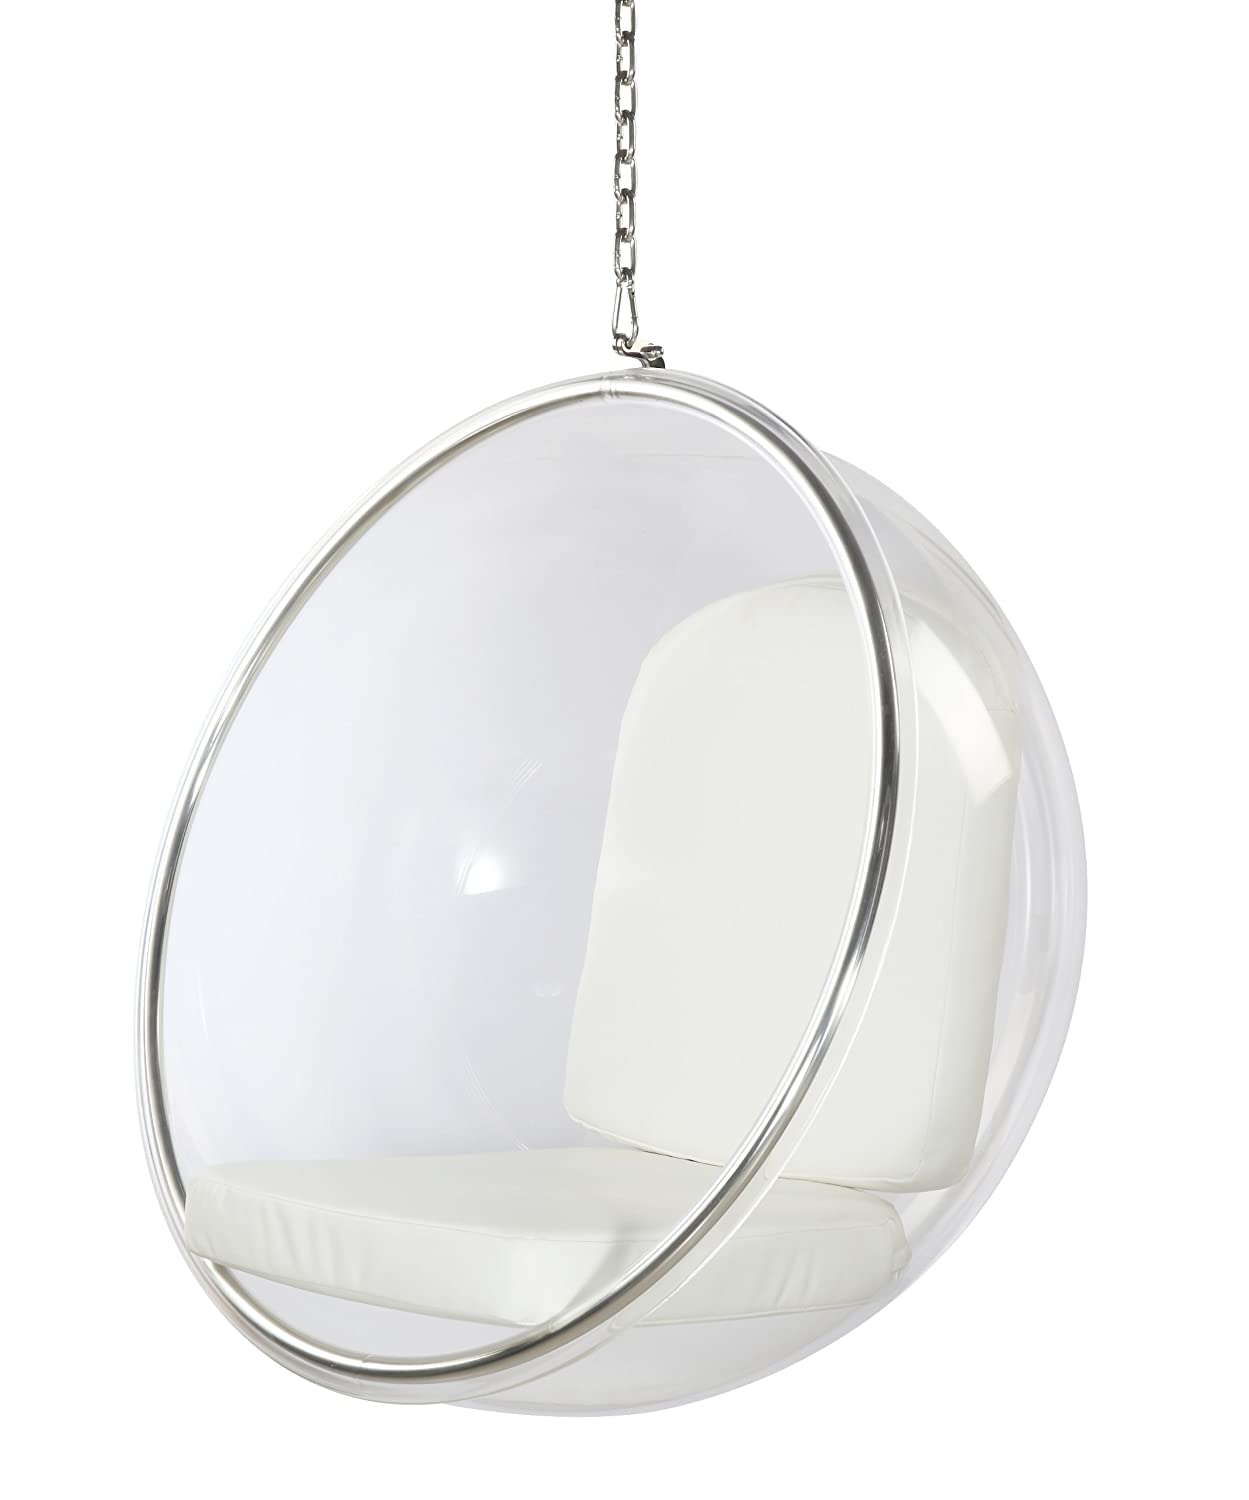 Eero Aerio Bubble Chair for Kids